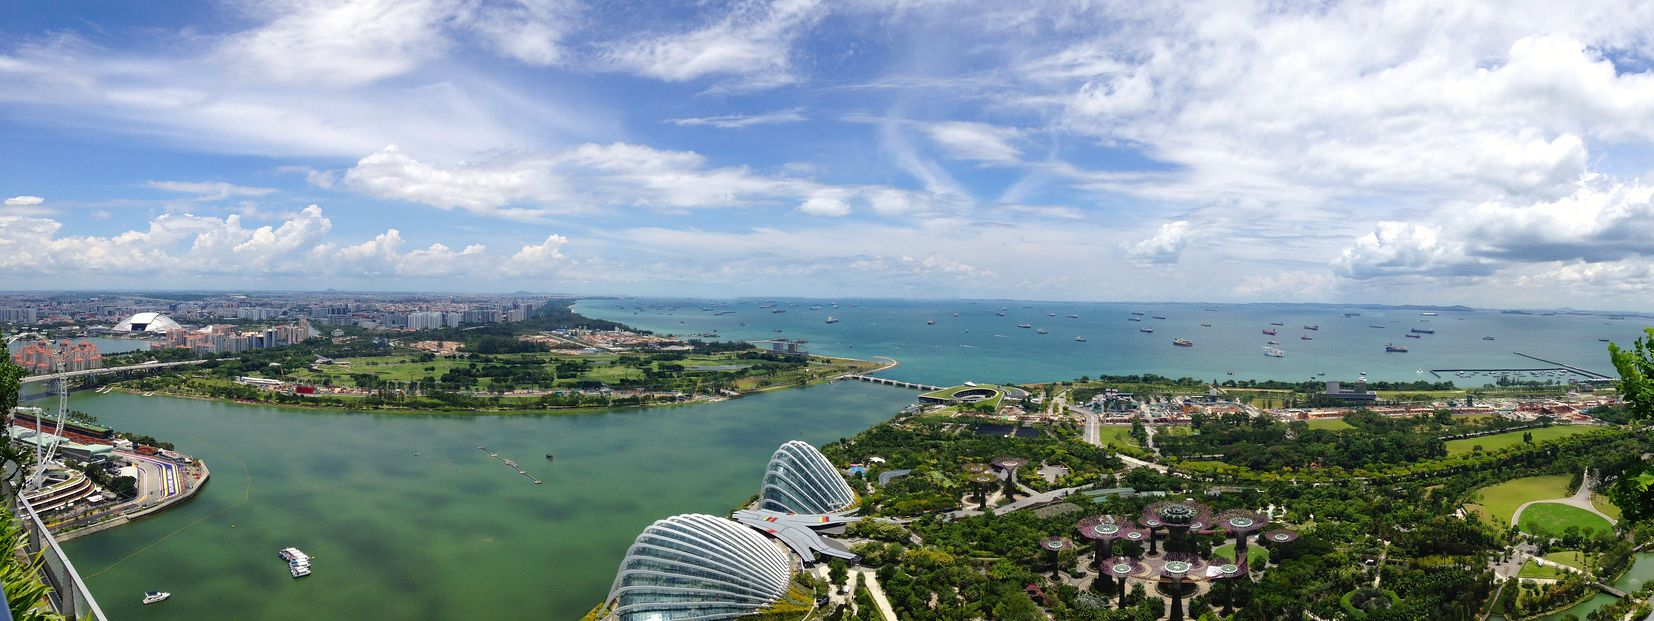 View of Singapore.